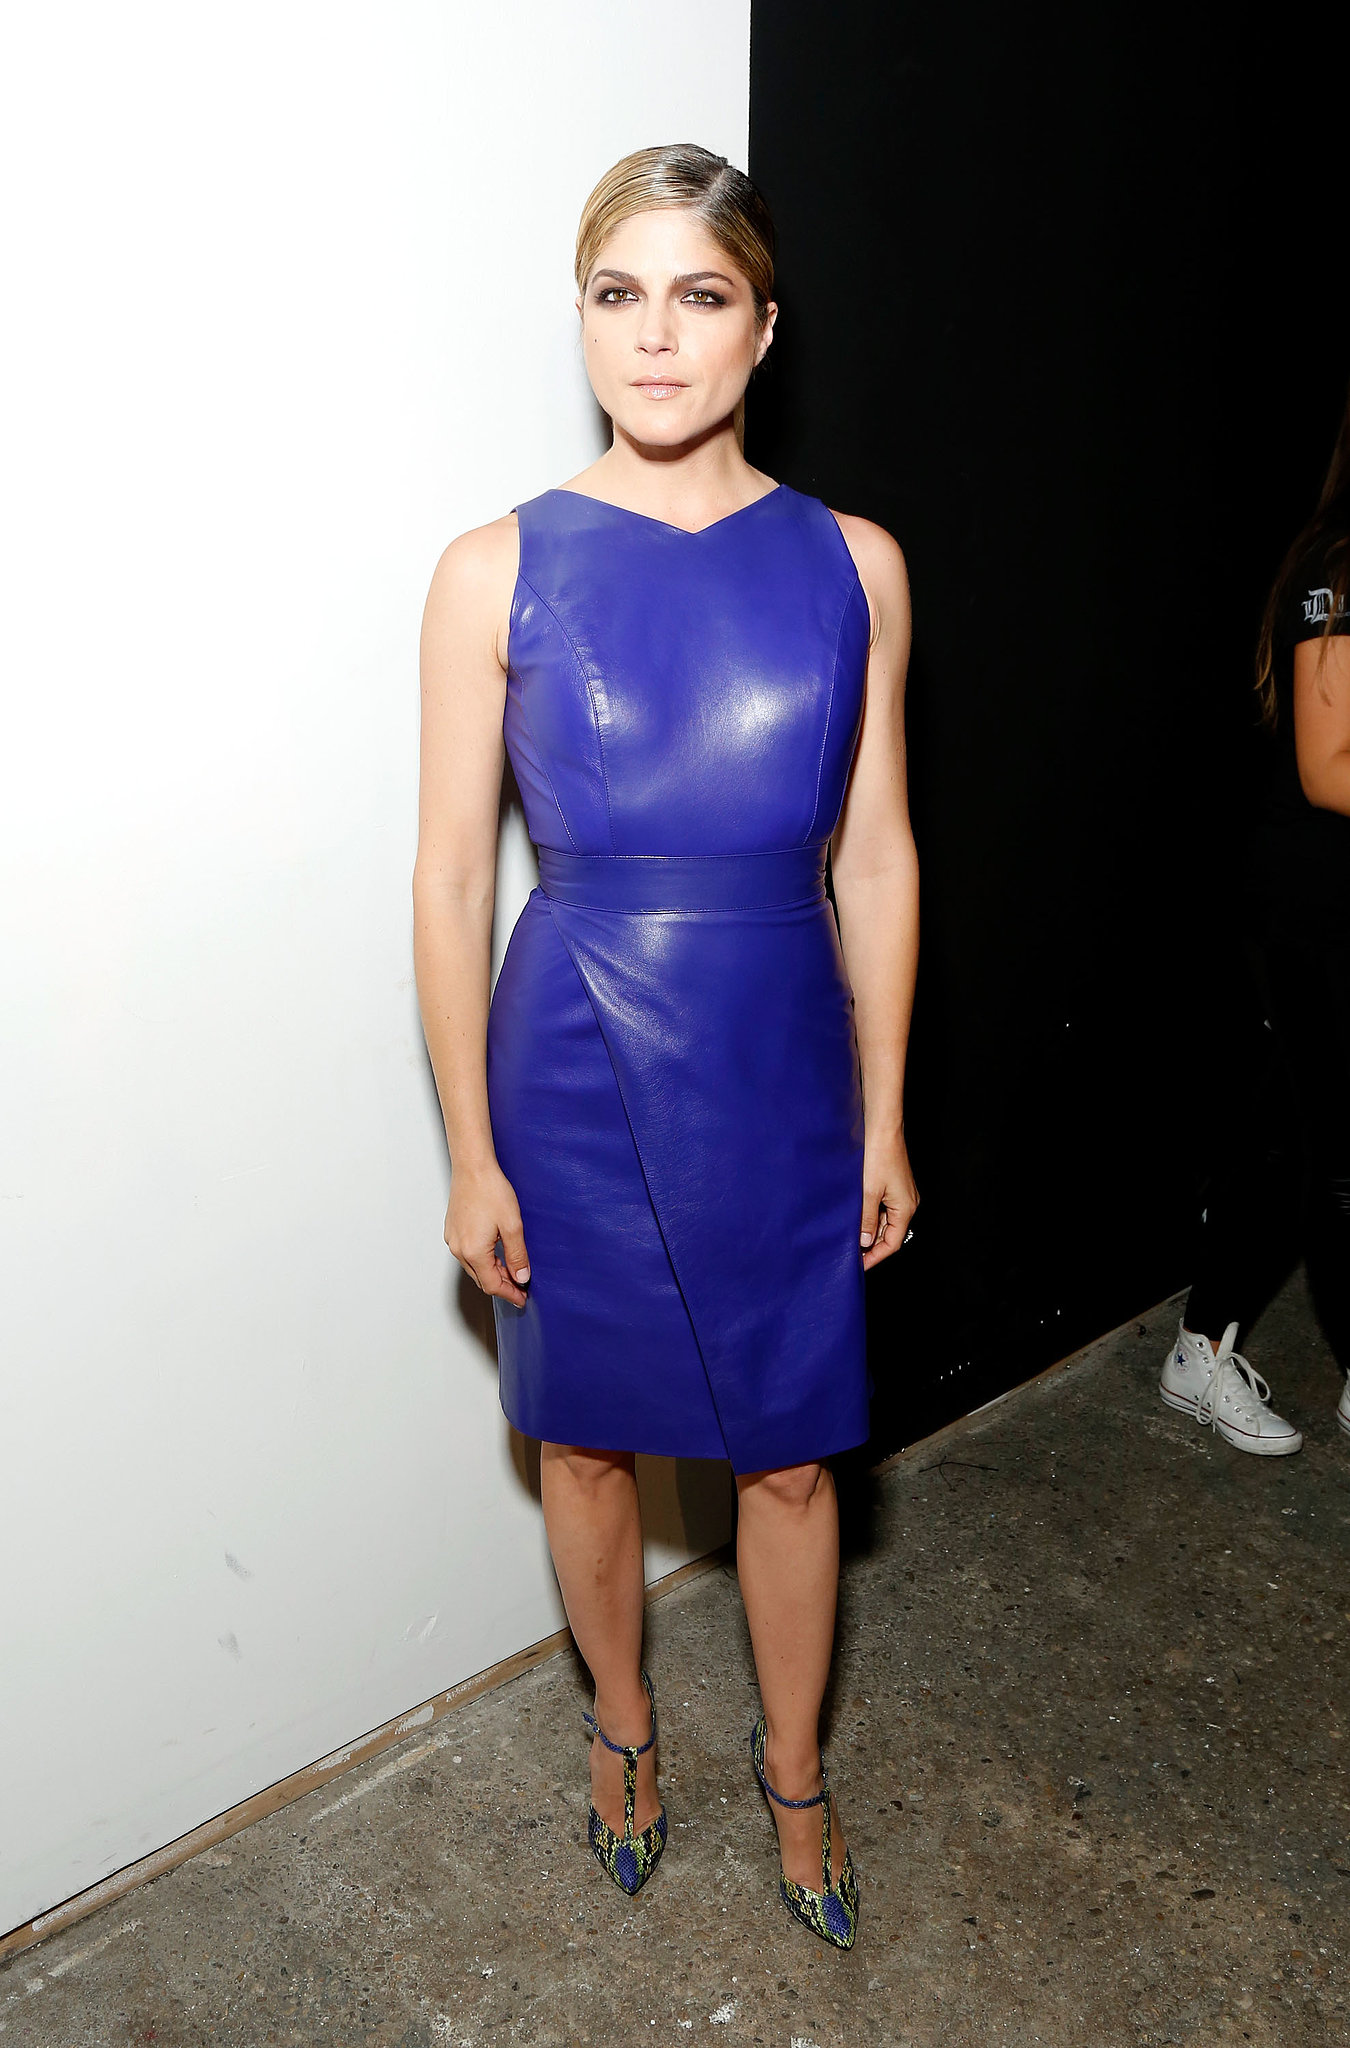 Selma-Blair-sported-sexy-leather-dress-Christian-Siriano